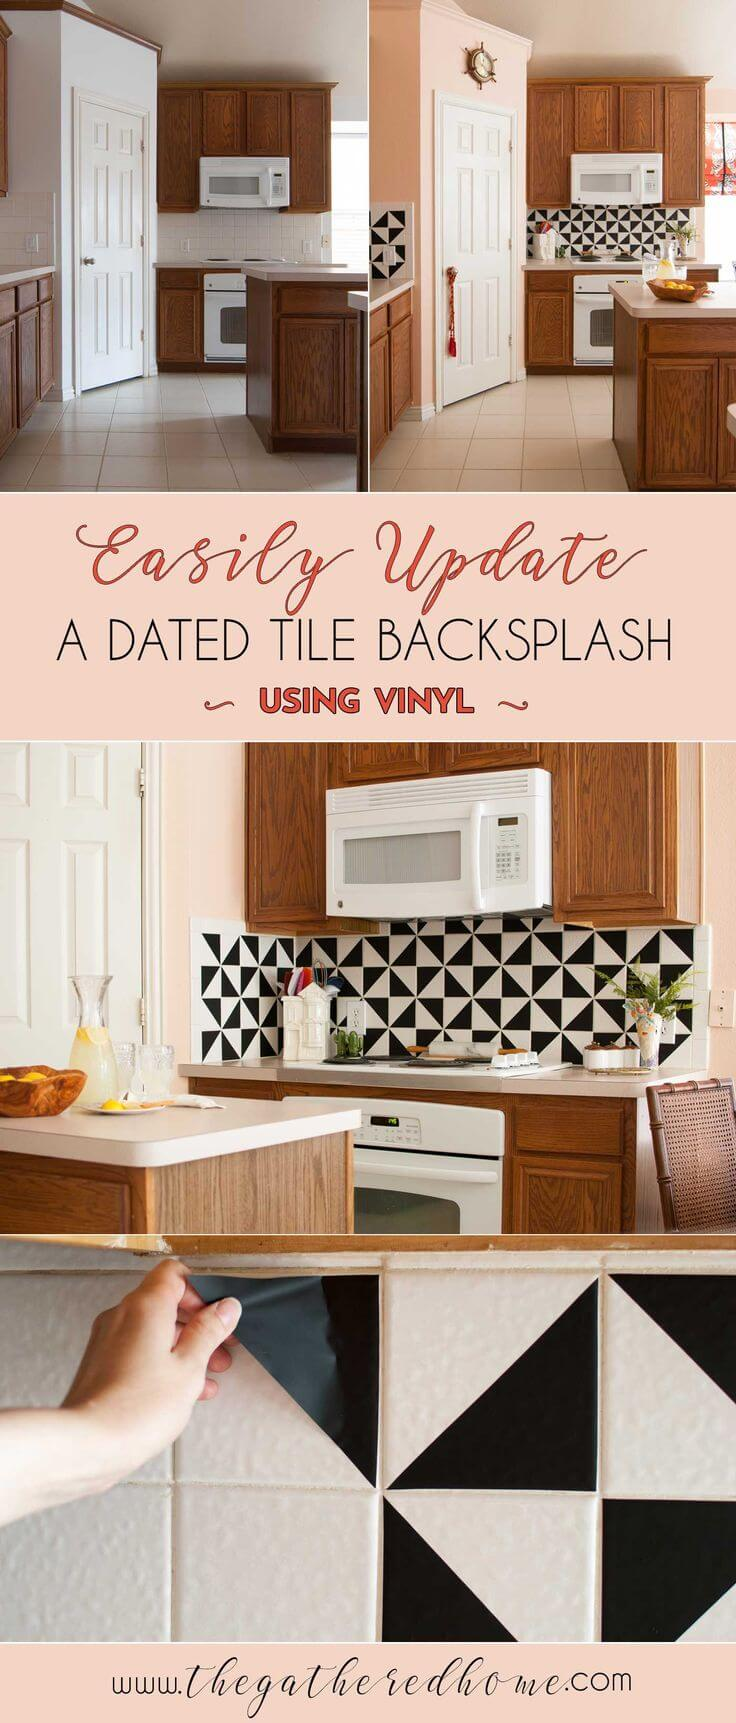 Kitchen backsplash ideas diy 17 cool cheap diy kitchen for Cheap diy kitchen backsplash ideas